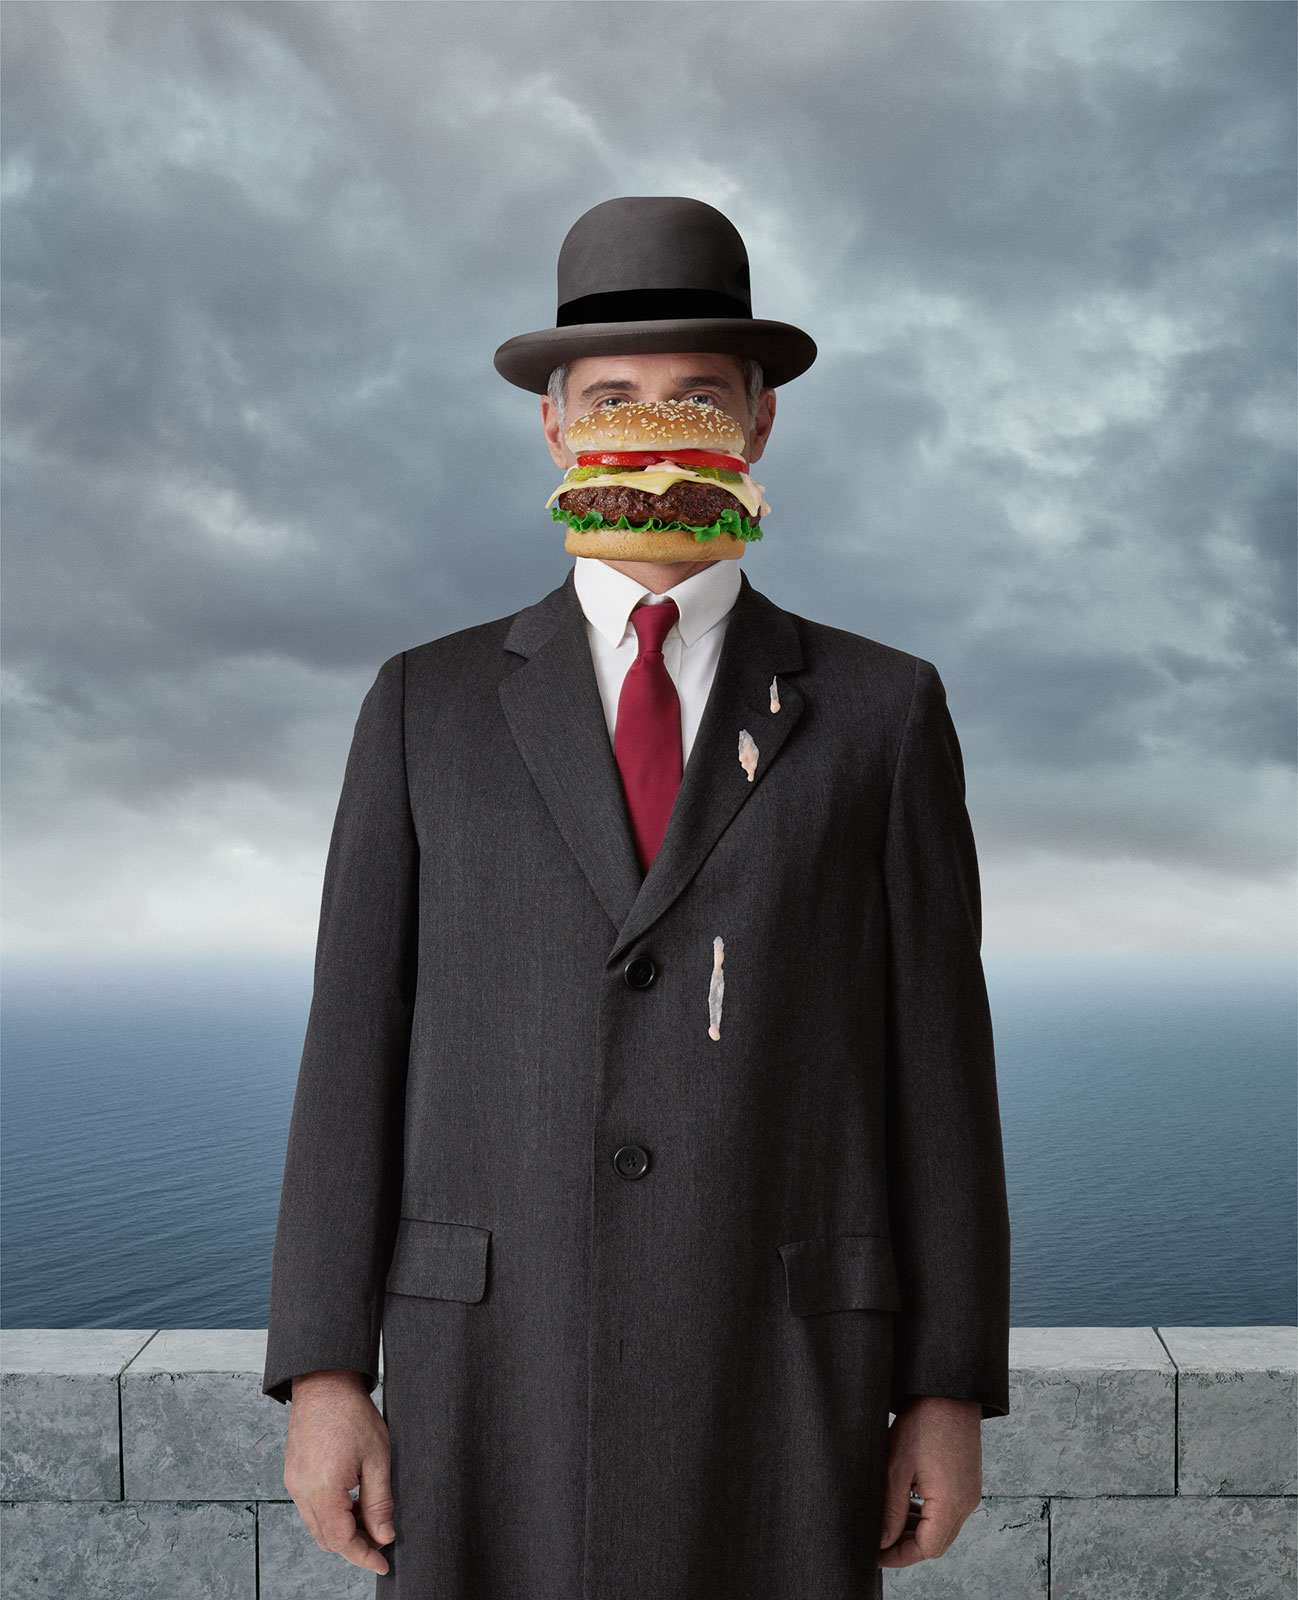 """Son of Mac"" TIME Magritte parody"